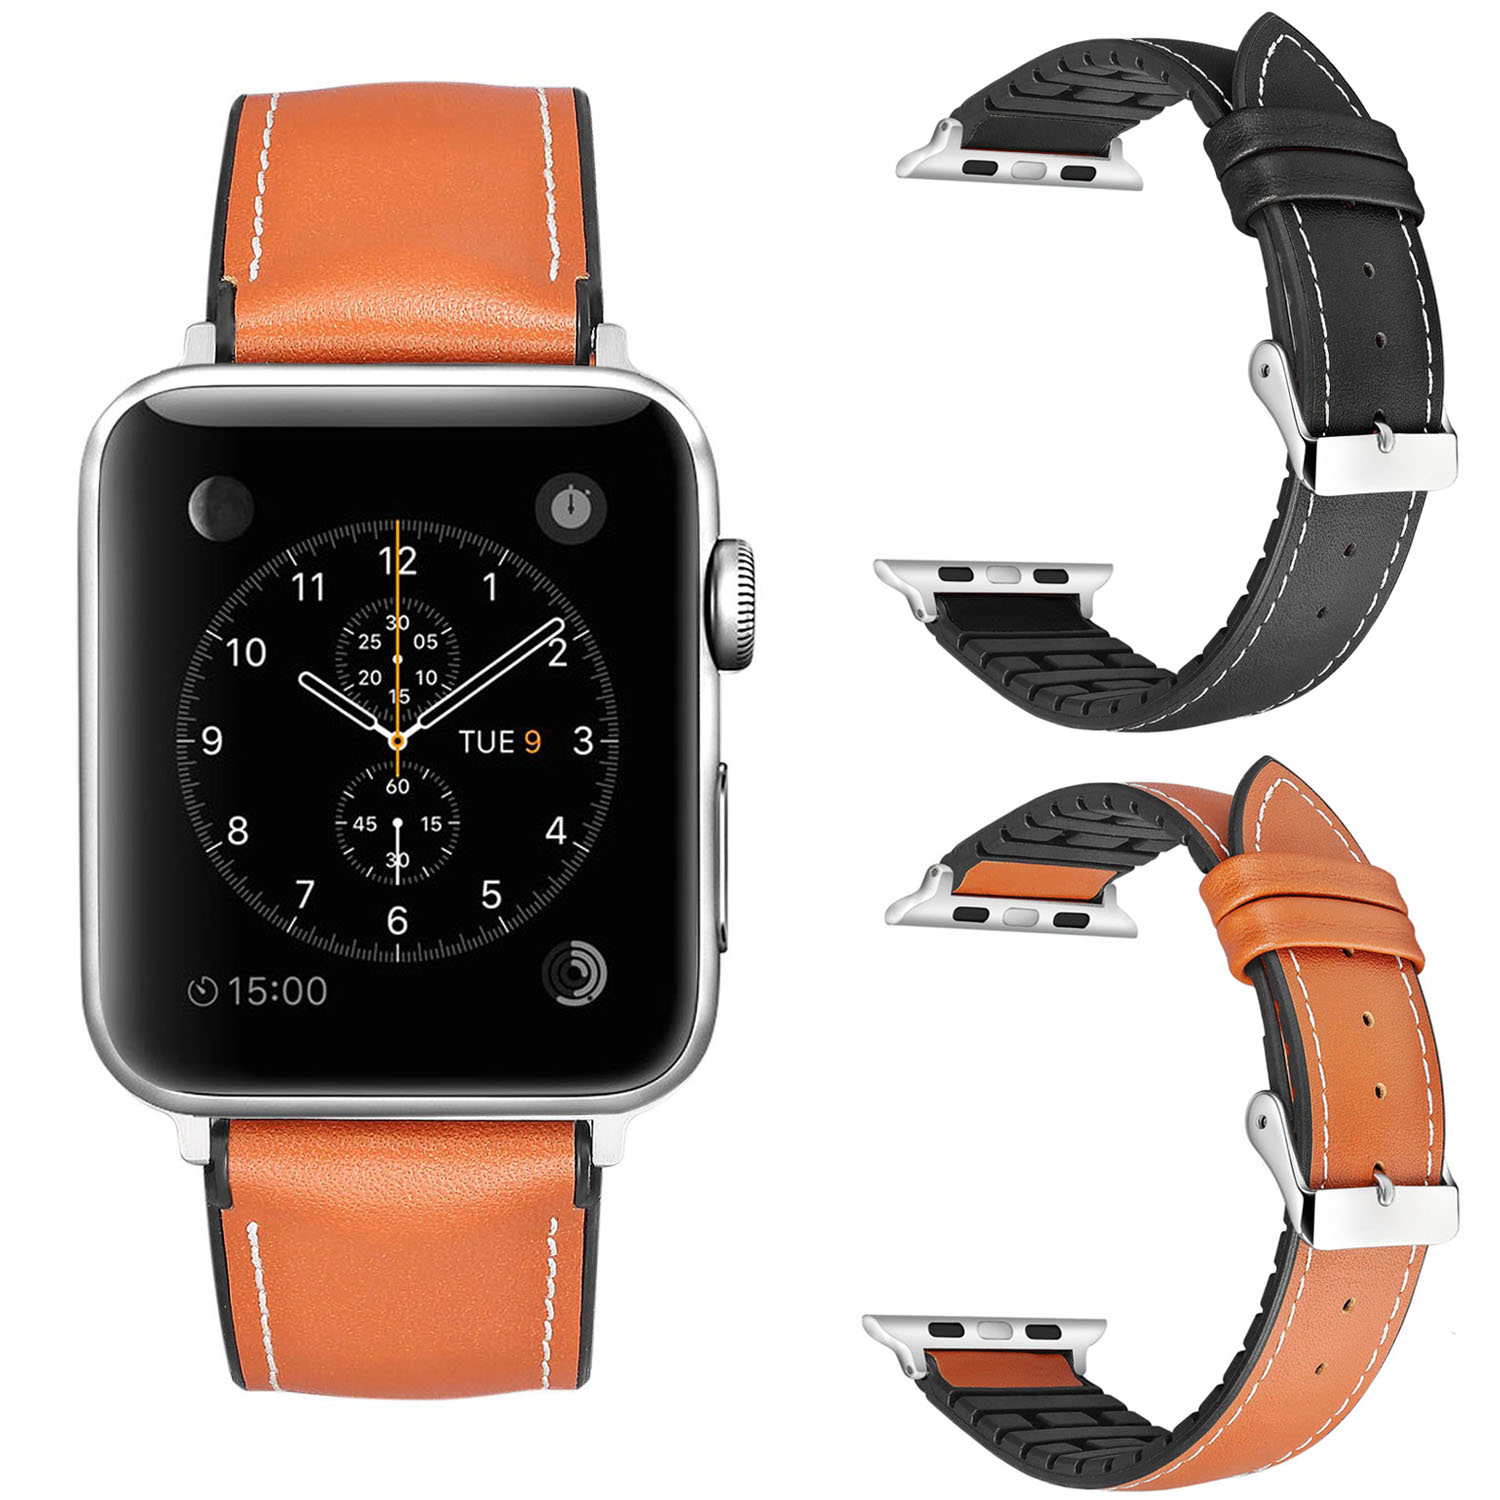 Black Brown Genuine Leather Strap for Apple Watch Series 1 2 3 Band Bracelet TPU Breathable Watchband 42mm 38mm w Metal Buckle genuine leather watchband for longines men leather watch strap for women metal buckle watch band belt retro watch clock band